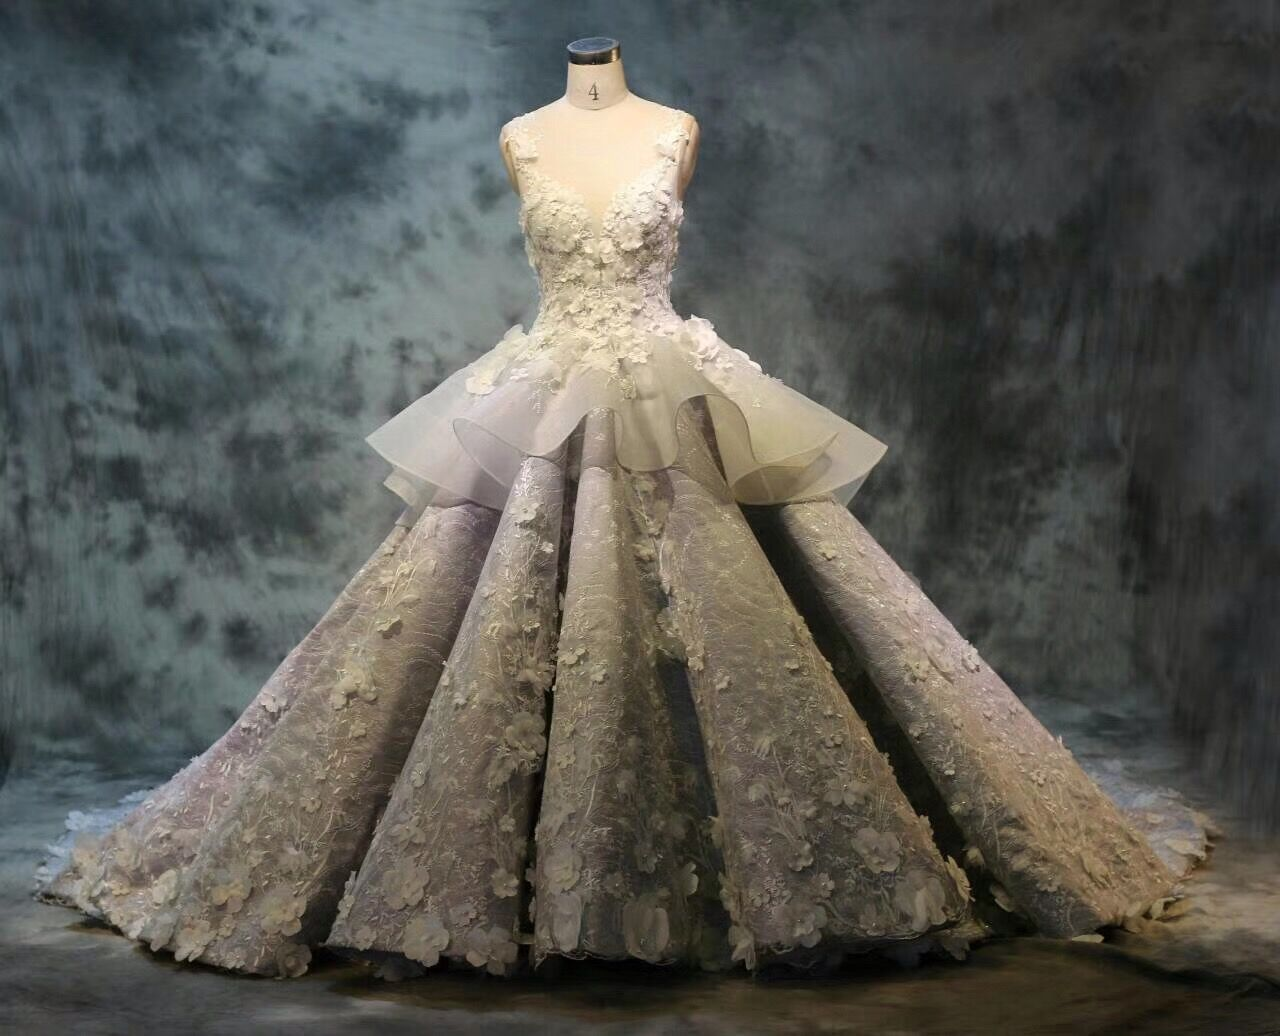 Luxury wedding dress wedding ball gown elegant wedding dress